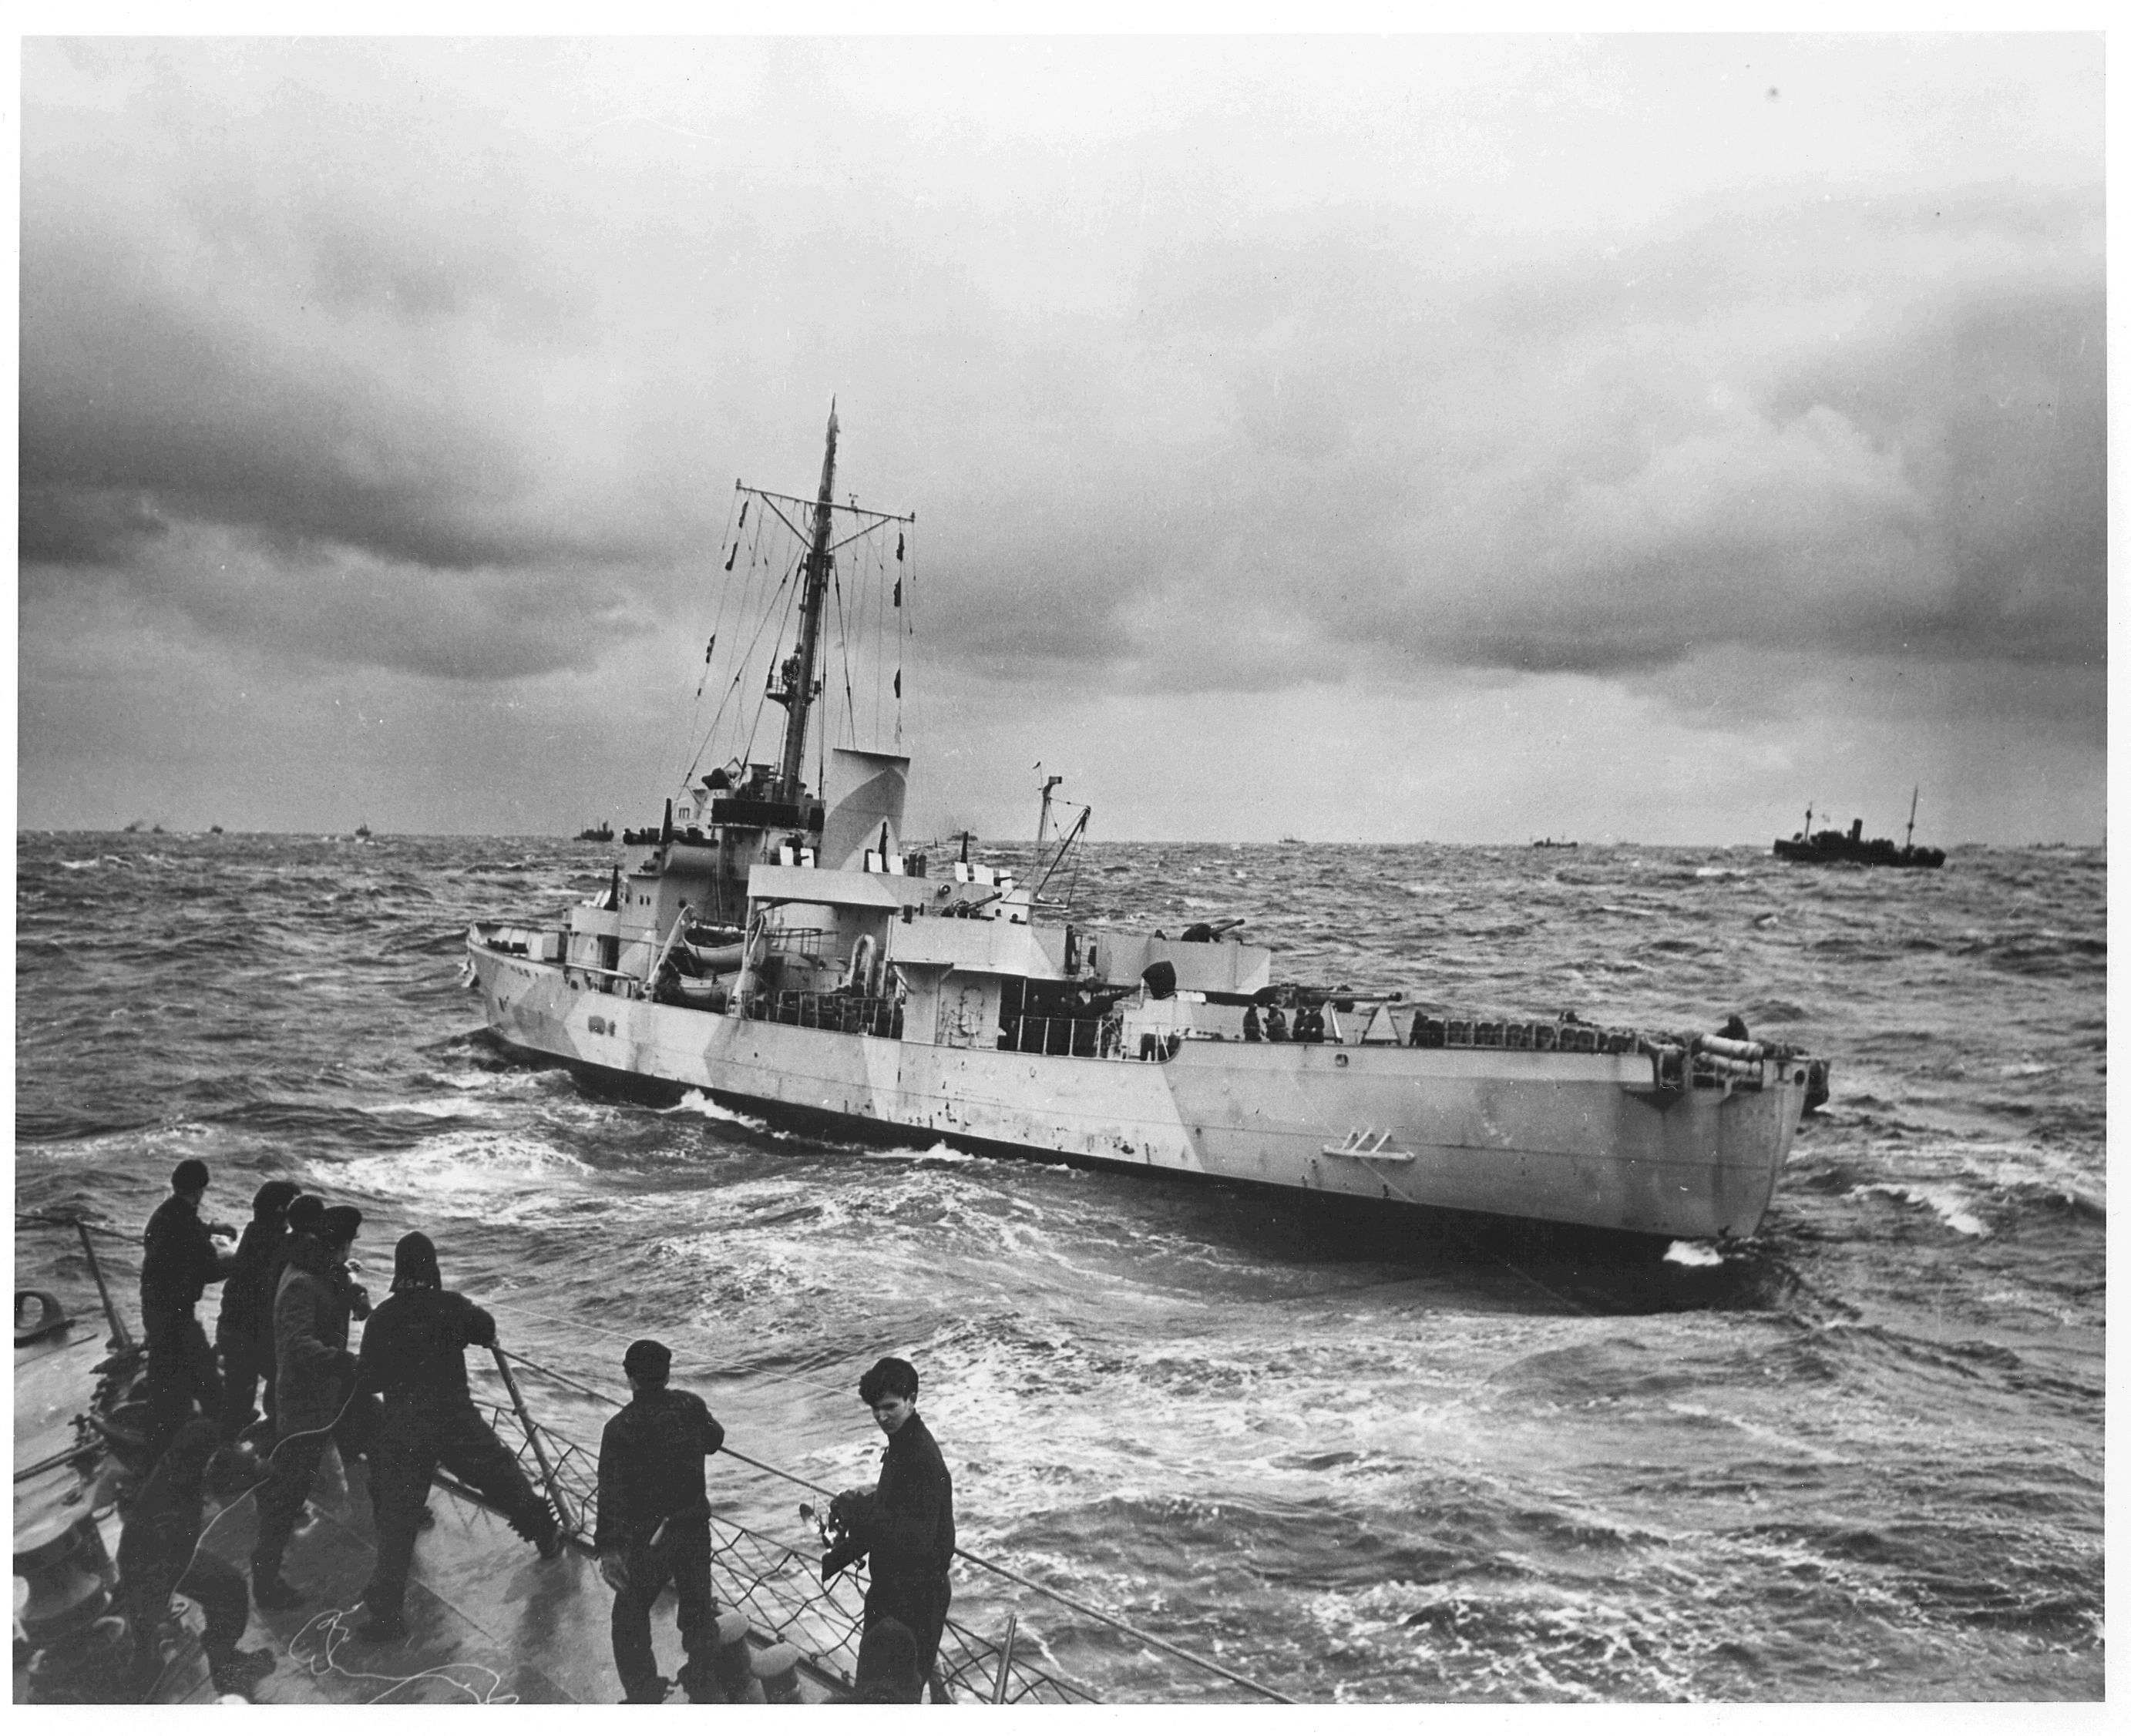 http://upload.wikimedia.org/wikipedia/commons/8/83/USCGC_Spencer_WPG-36.jpg